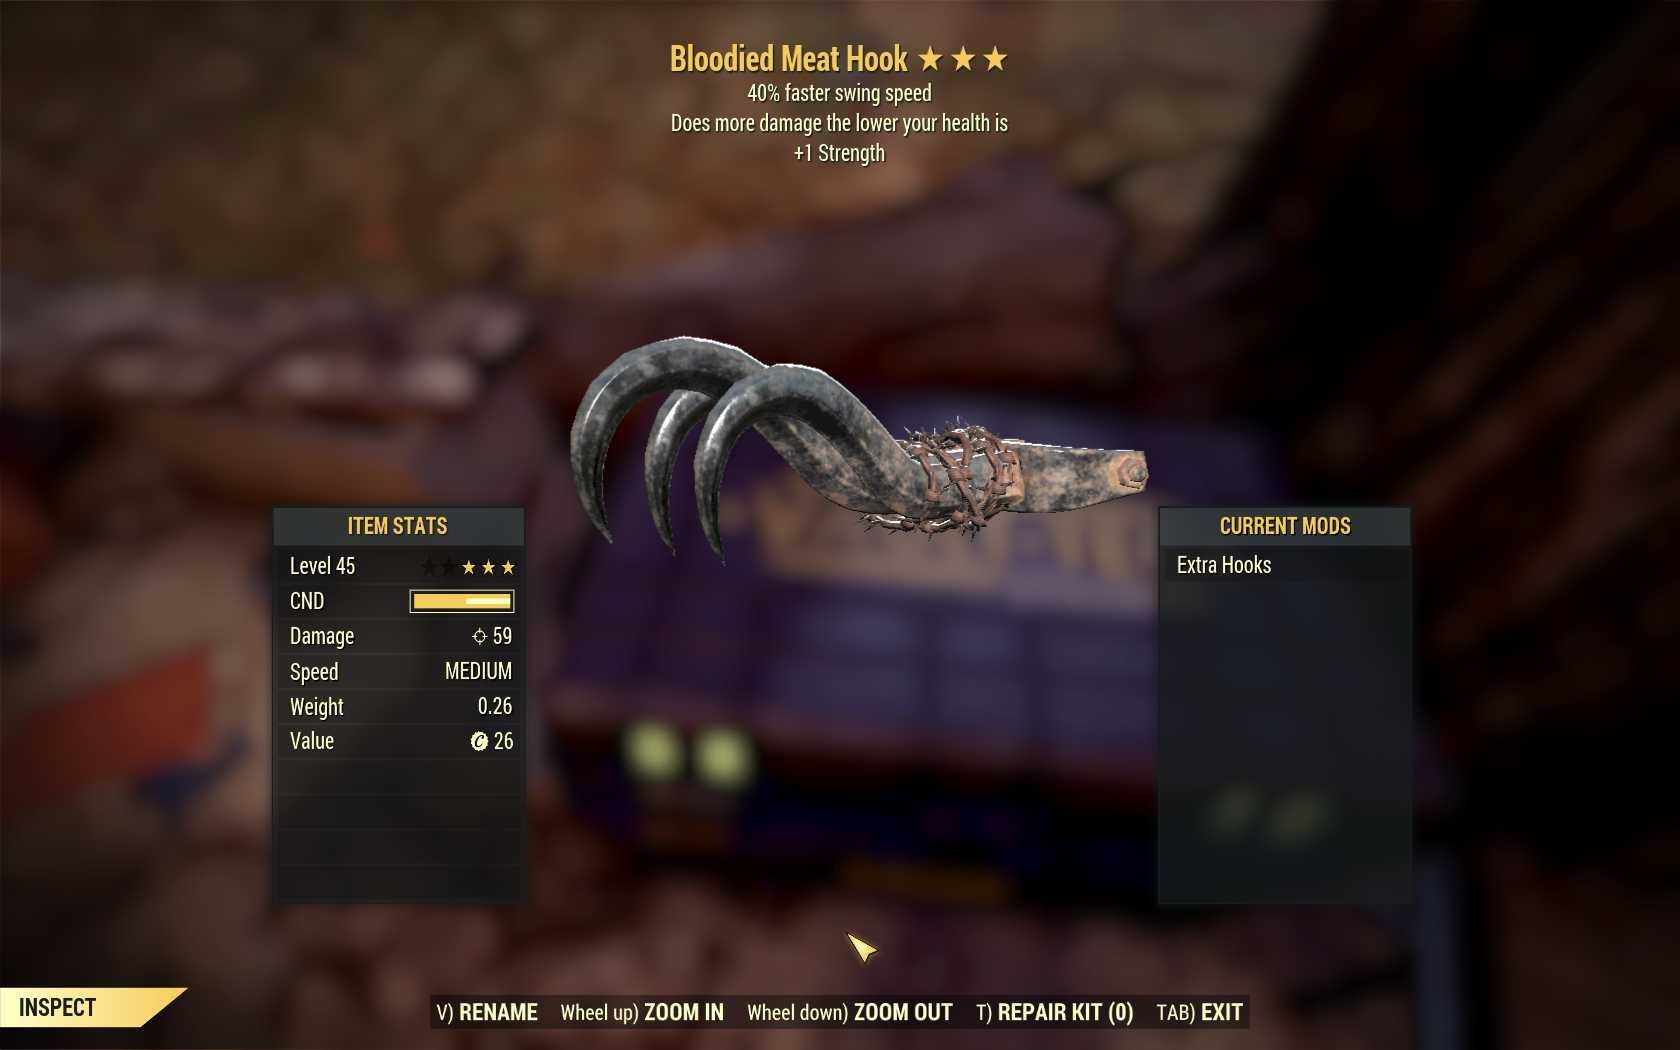 Bloodied Meat Hook (40% Faster Swing Speed, +1 Strength)